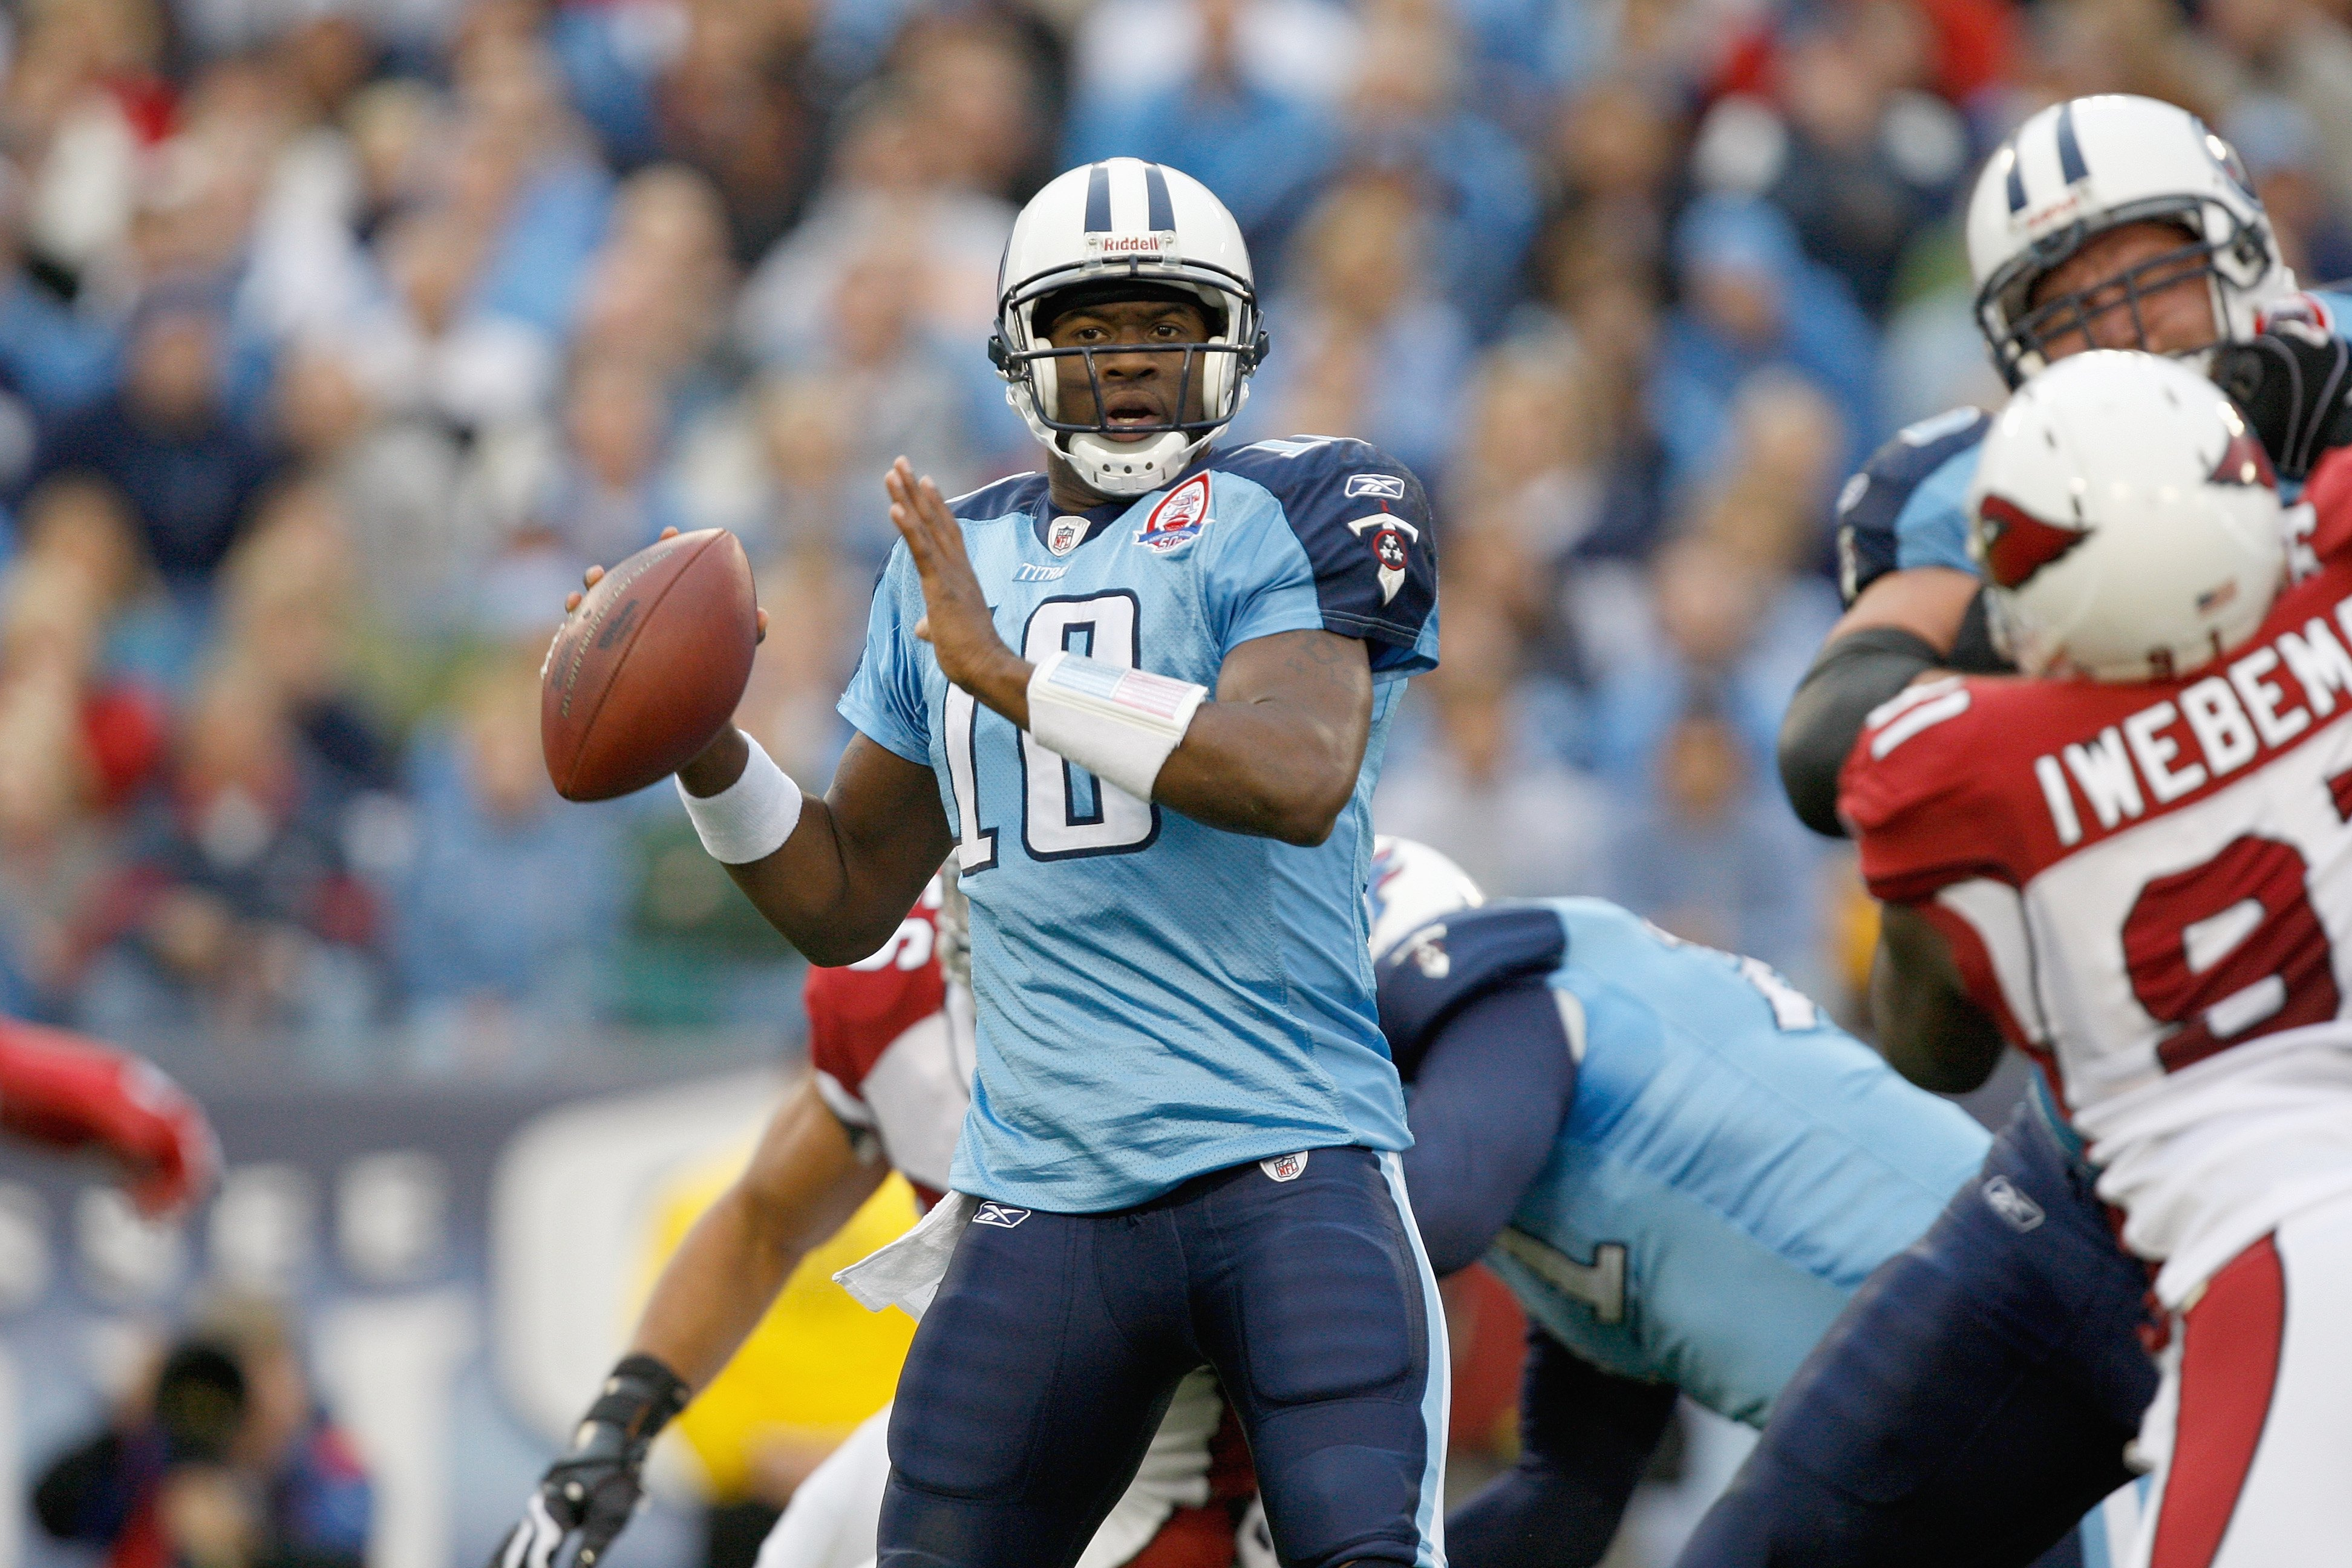 NASHVILLE, TN - NOVEMBER 29:  Vince Young #10 of the Tennessee Titans passes the ball during the game against the Arizona Cardinals at LP Field on November 29, 2009 in Nashville, Tennessee. The Titans defeated the Cardinals 20-17. (Photo by Streeter Lecka